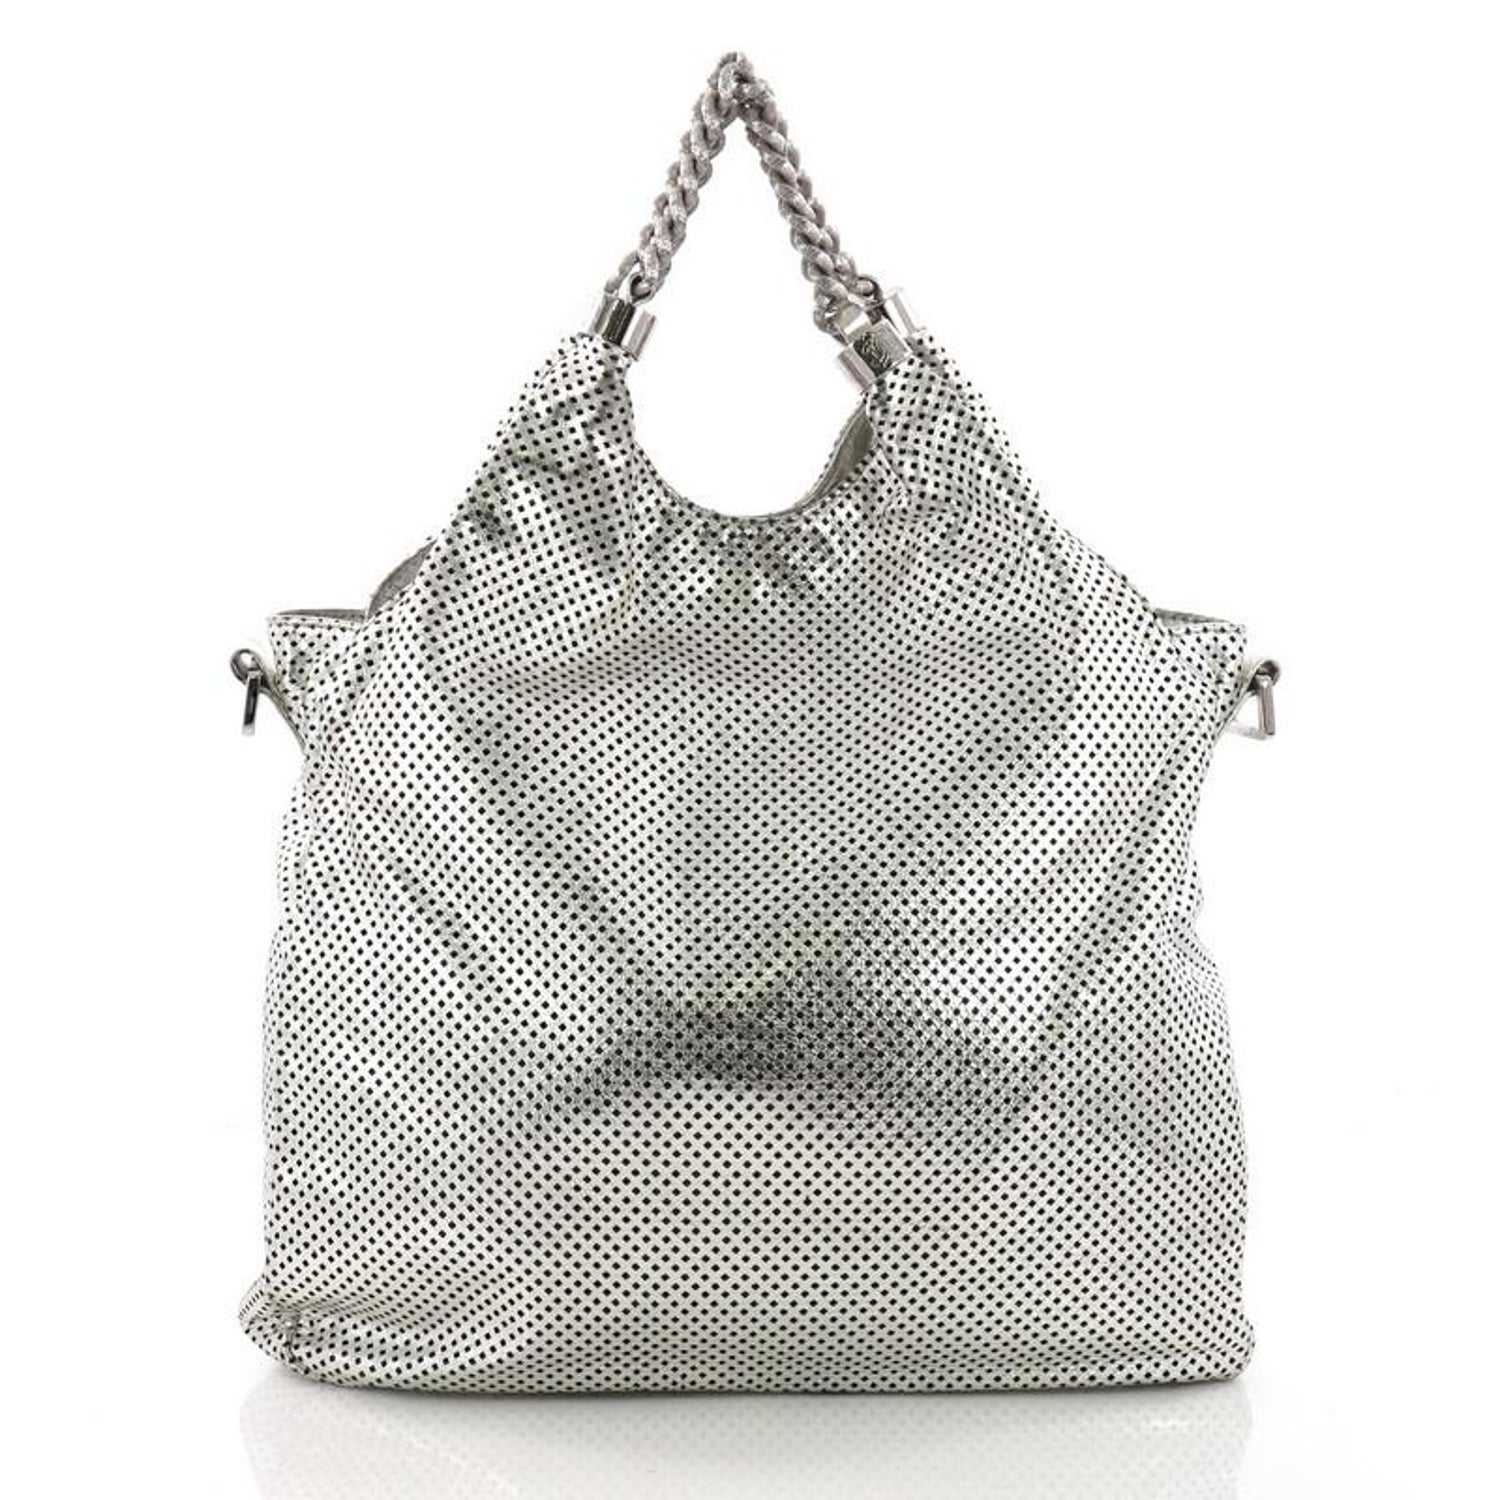 849d762c9694 Chanel Rodeo Drive Hobo Perforated Leather Large at 1stdibs